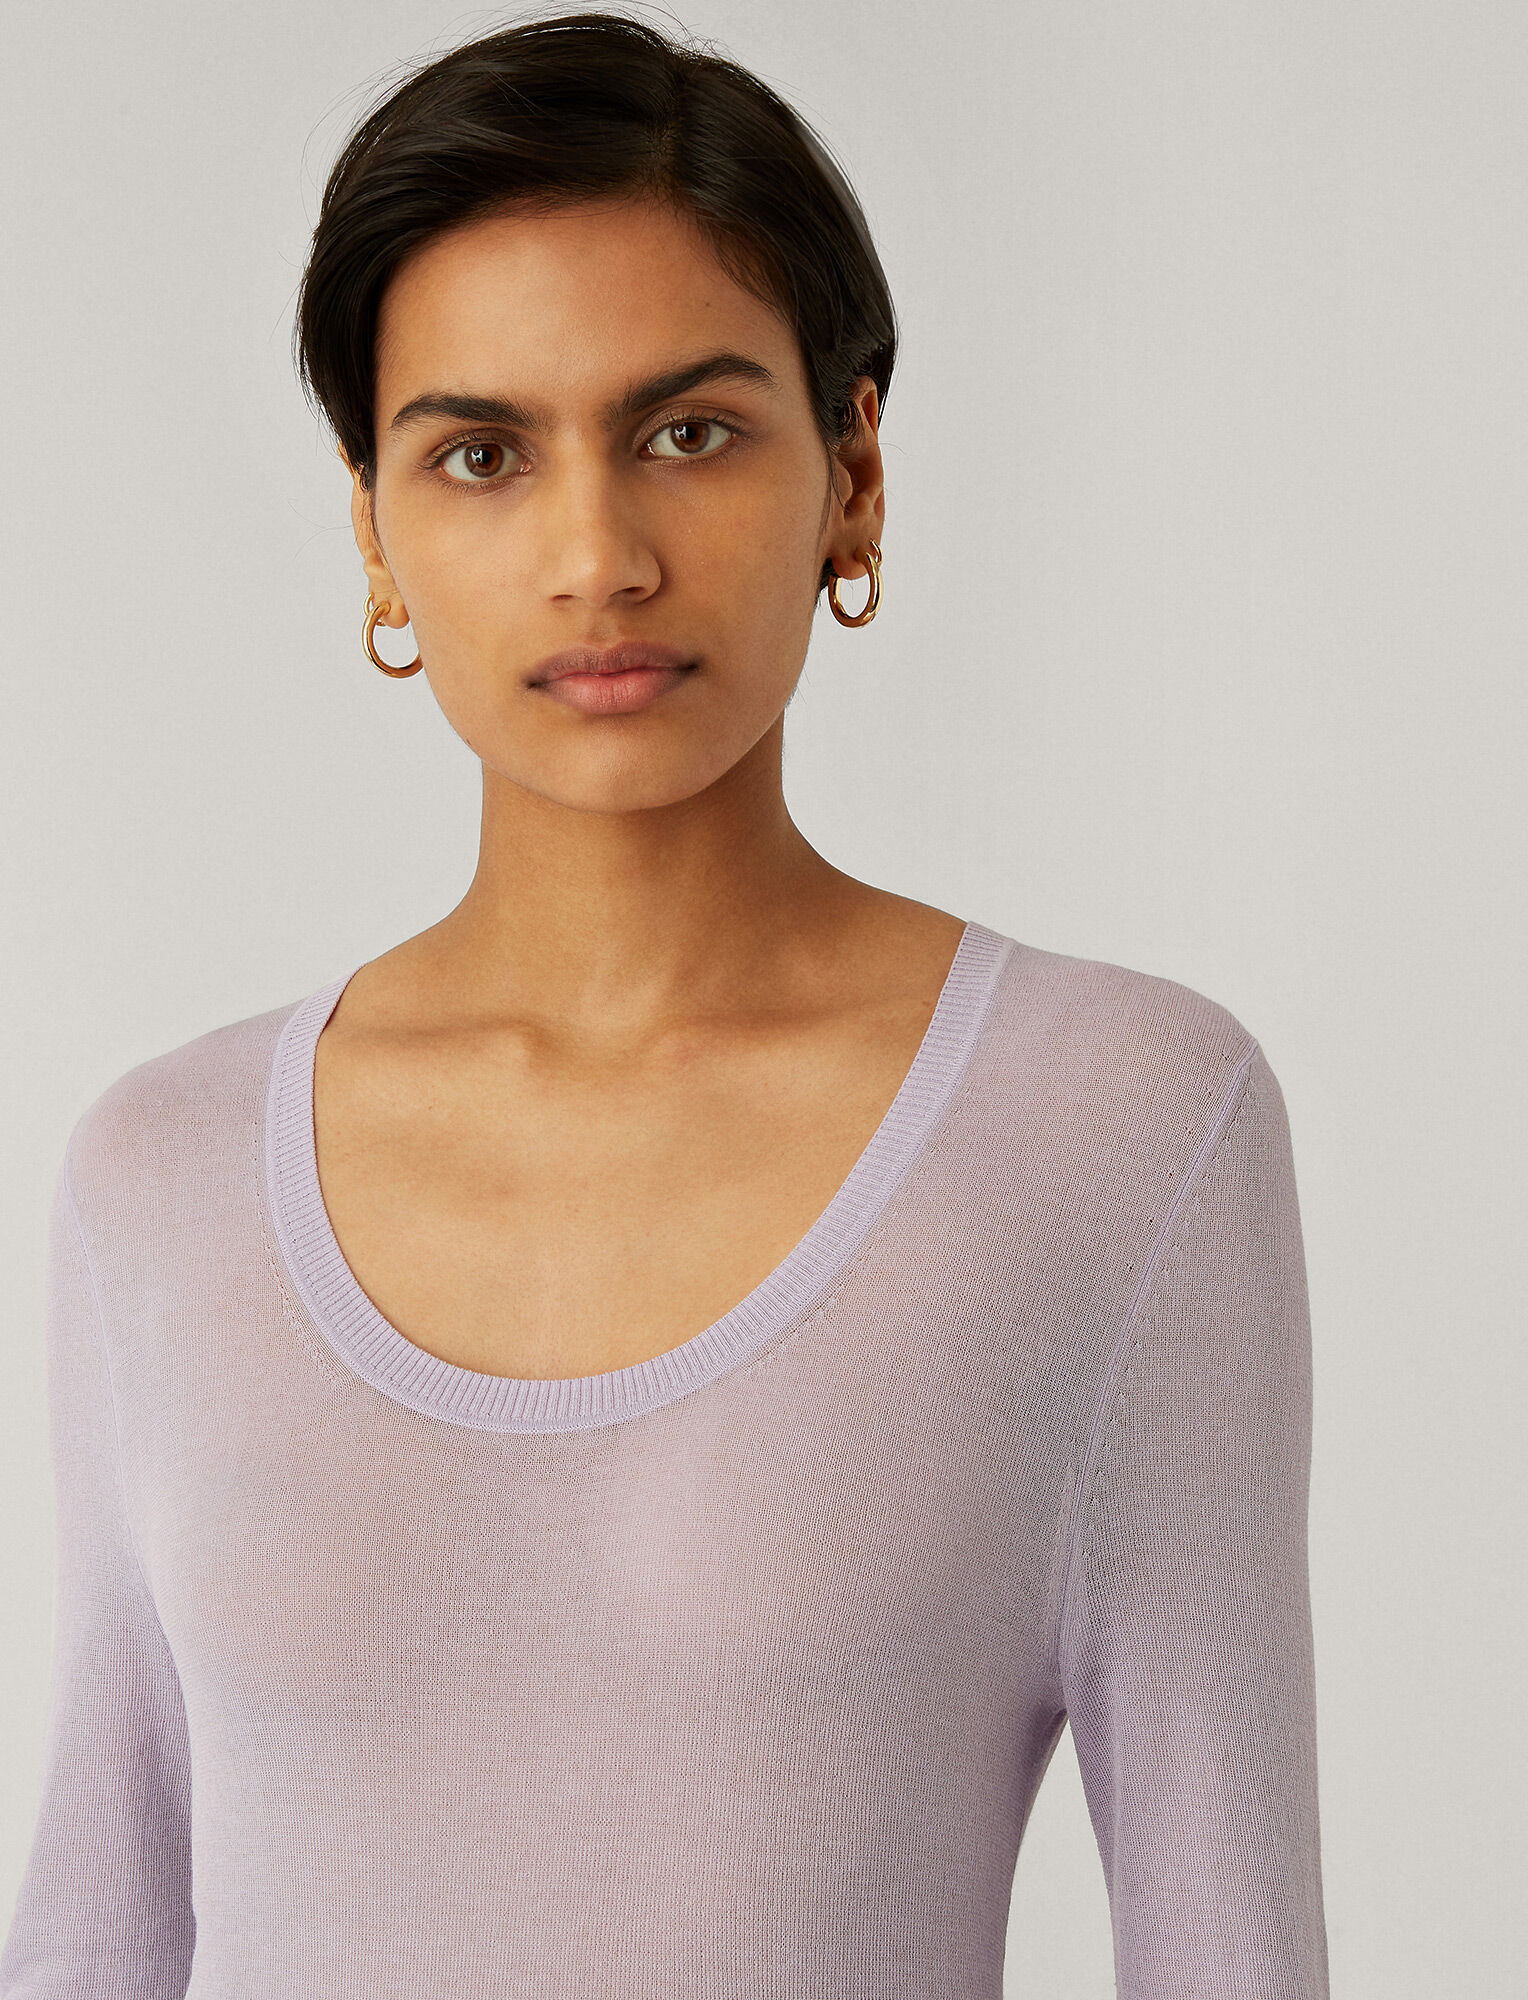 Joseph, Sheer Cotton Knit, in PARME